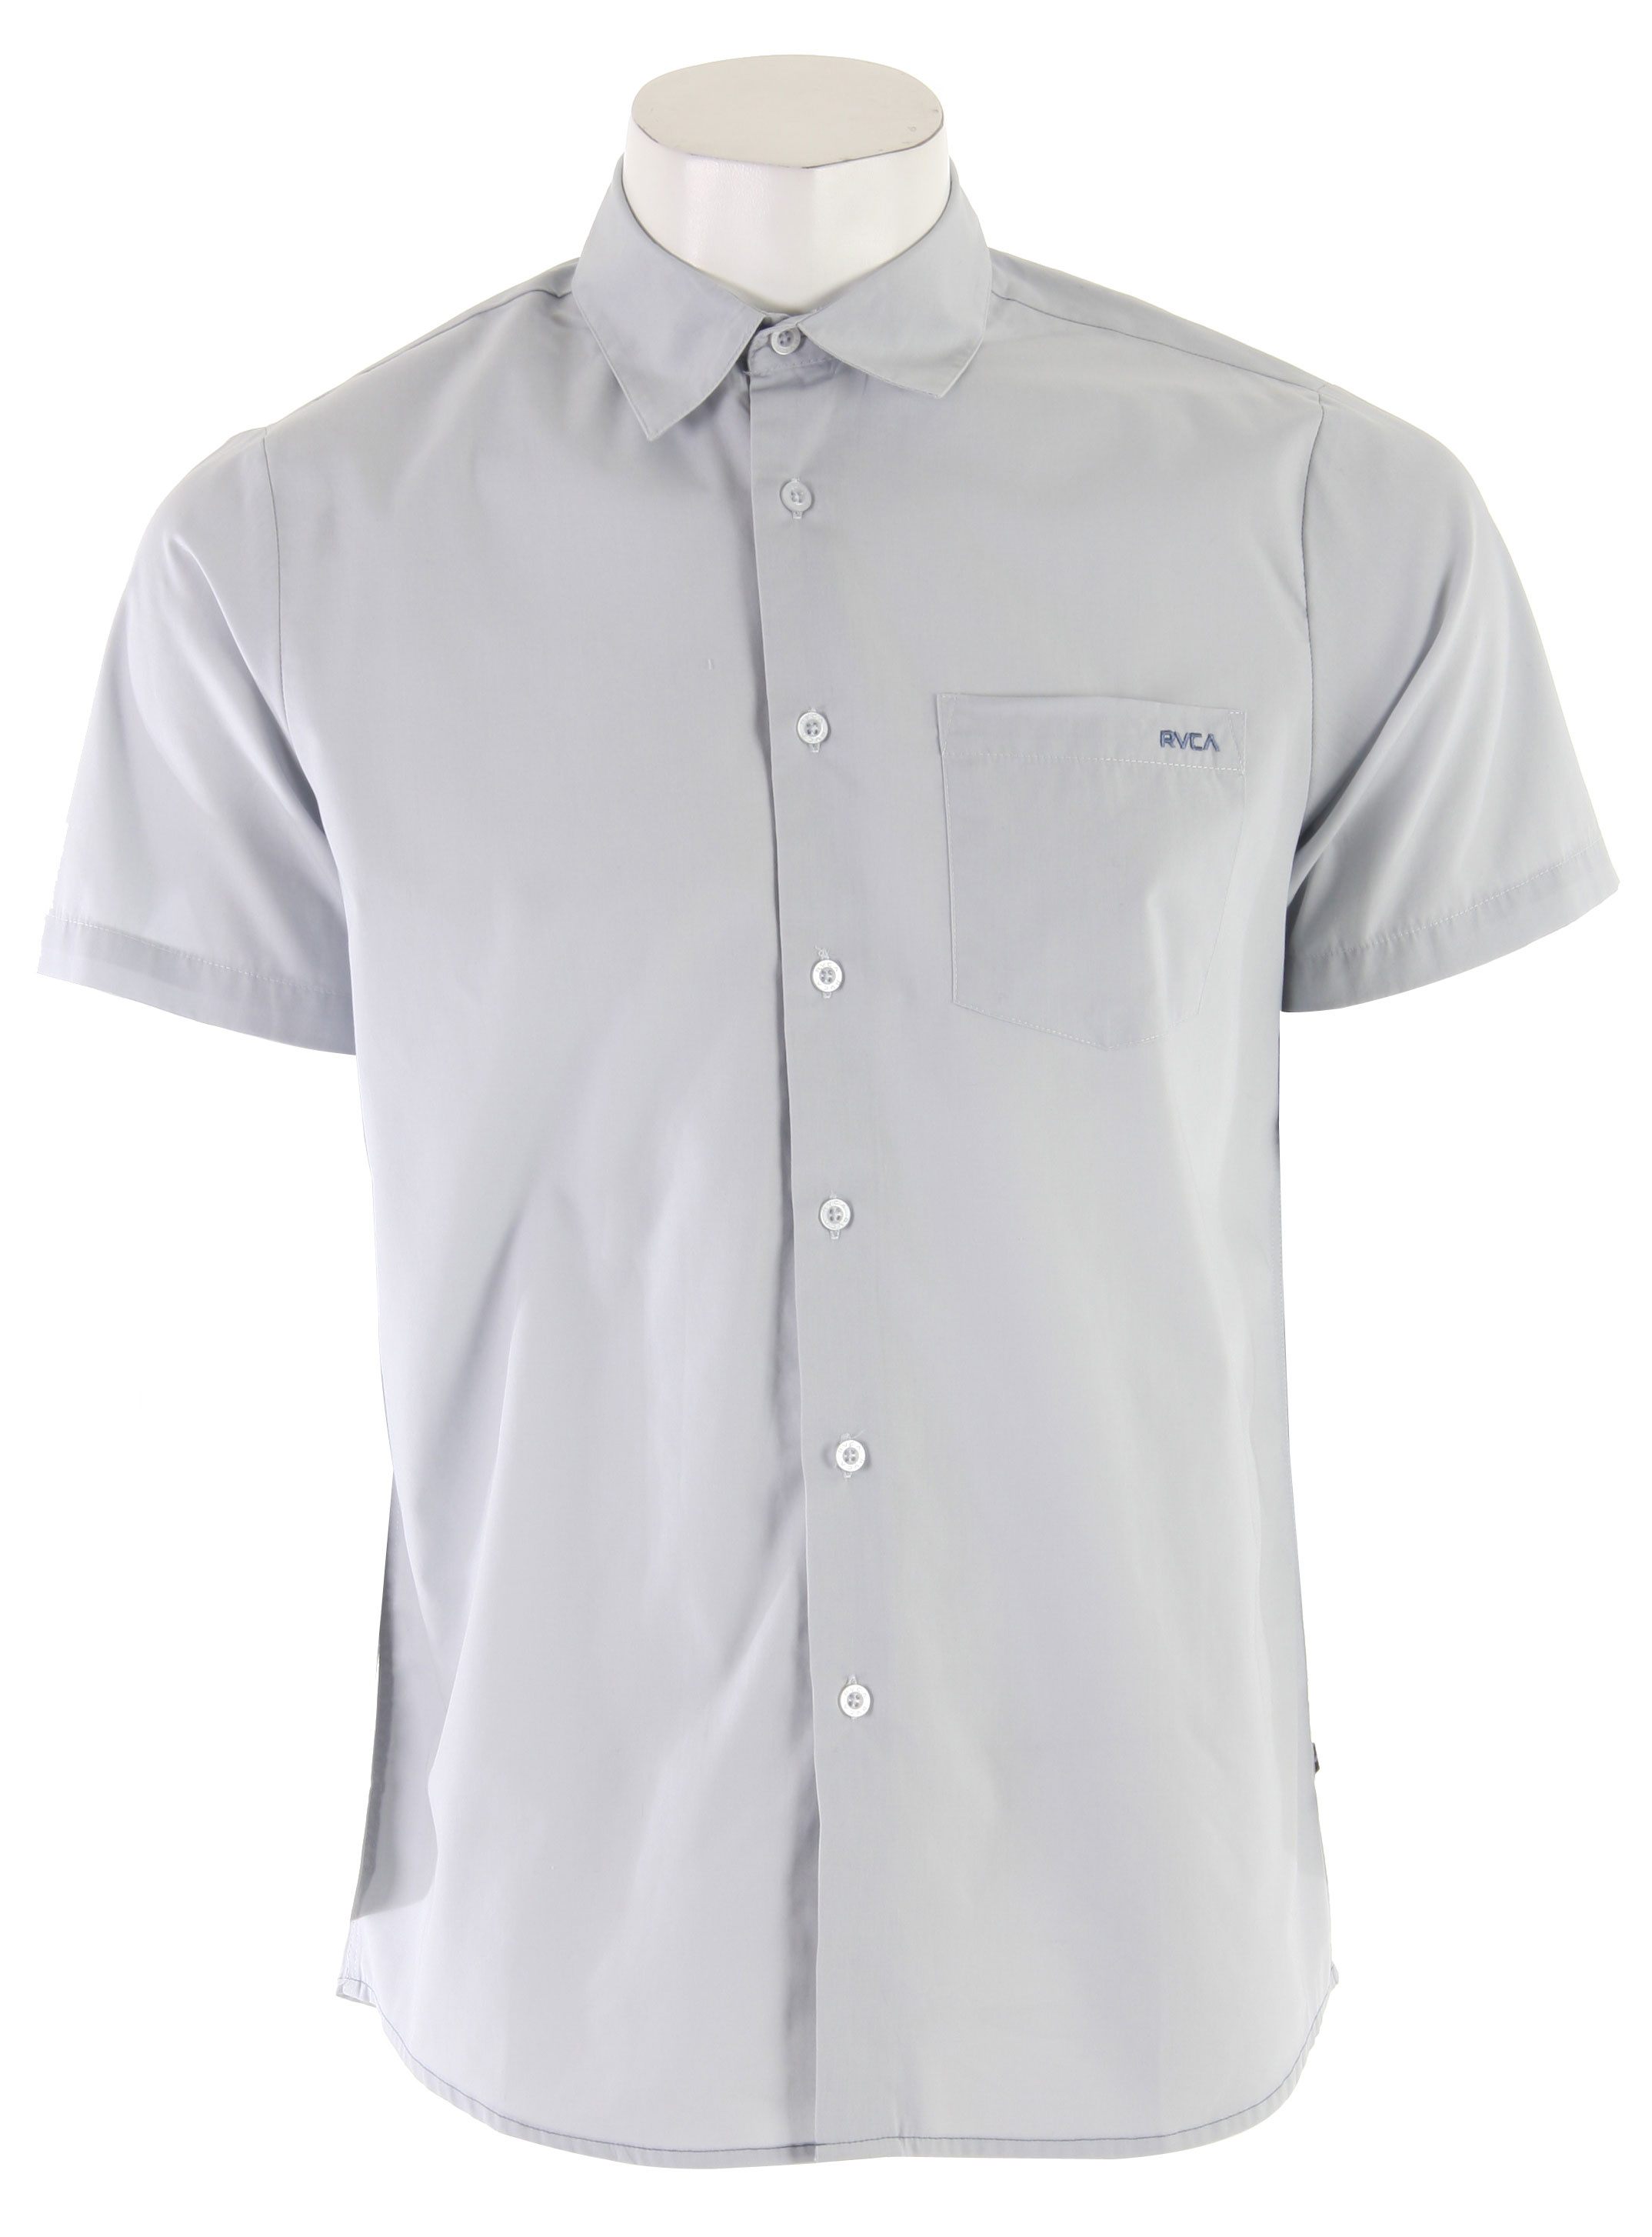 Surf The RVCA Republic S/S Shirt offers a combination of classic and casual design. Made with cotton and polyester, this short sleeve button down shirt brings you that crisp summer look. Wear it casually with shorts and a pair of sandals and you're ready to hit the park or fancy it up a bit by wearing it with a pair of linen trousers and you're ready to hit a fancy luncheon. So versatile and practical, mix it up every now and then and you'll see how timeless the RVCA Republic S/S Shirt really is.Key Features of the RVCA Republic S/S Shirt: Cotton/Polyester long sleeve button down Patch pocket at left front chest RVCA embroidery at left front pocket VA flag label at bottom left side Slim Fit - $26.95